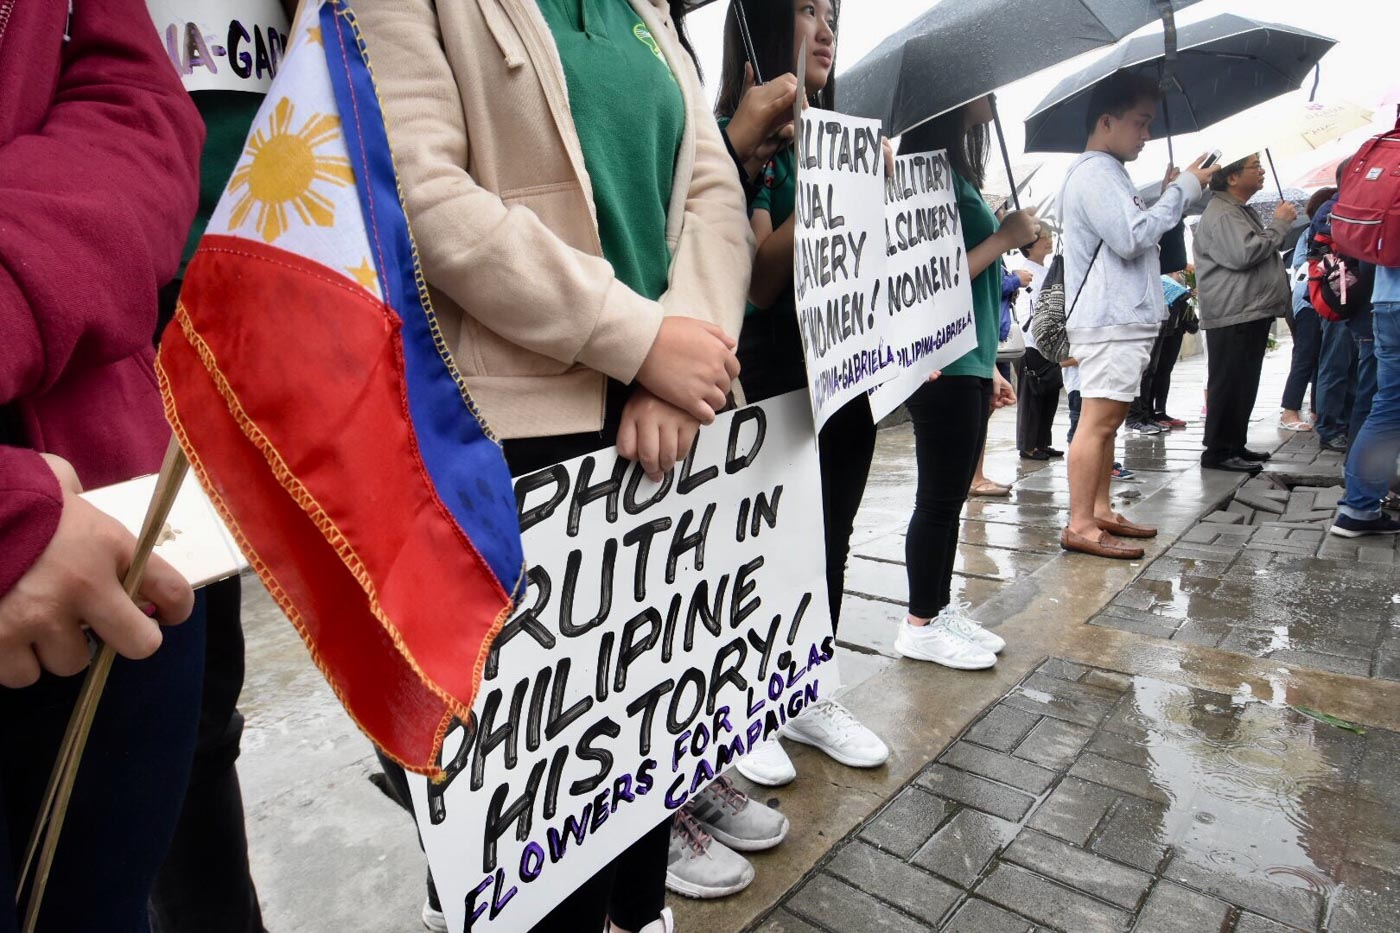 TRUTH IN HISTORY. Flower for Lolas Campaign organized by Gabriela and Lila Filipina at the former site of Comfort Woman statue at Roxas Blvd. Photo by Angie de Silva/Rappler